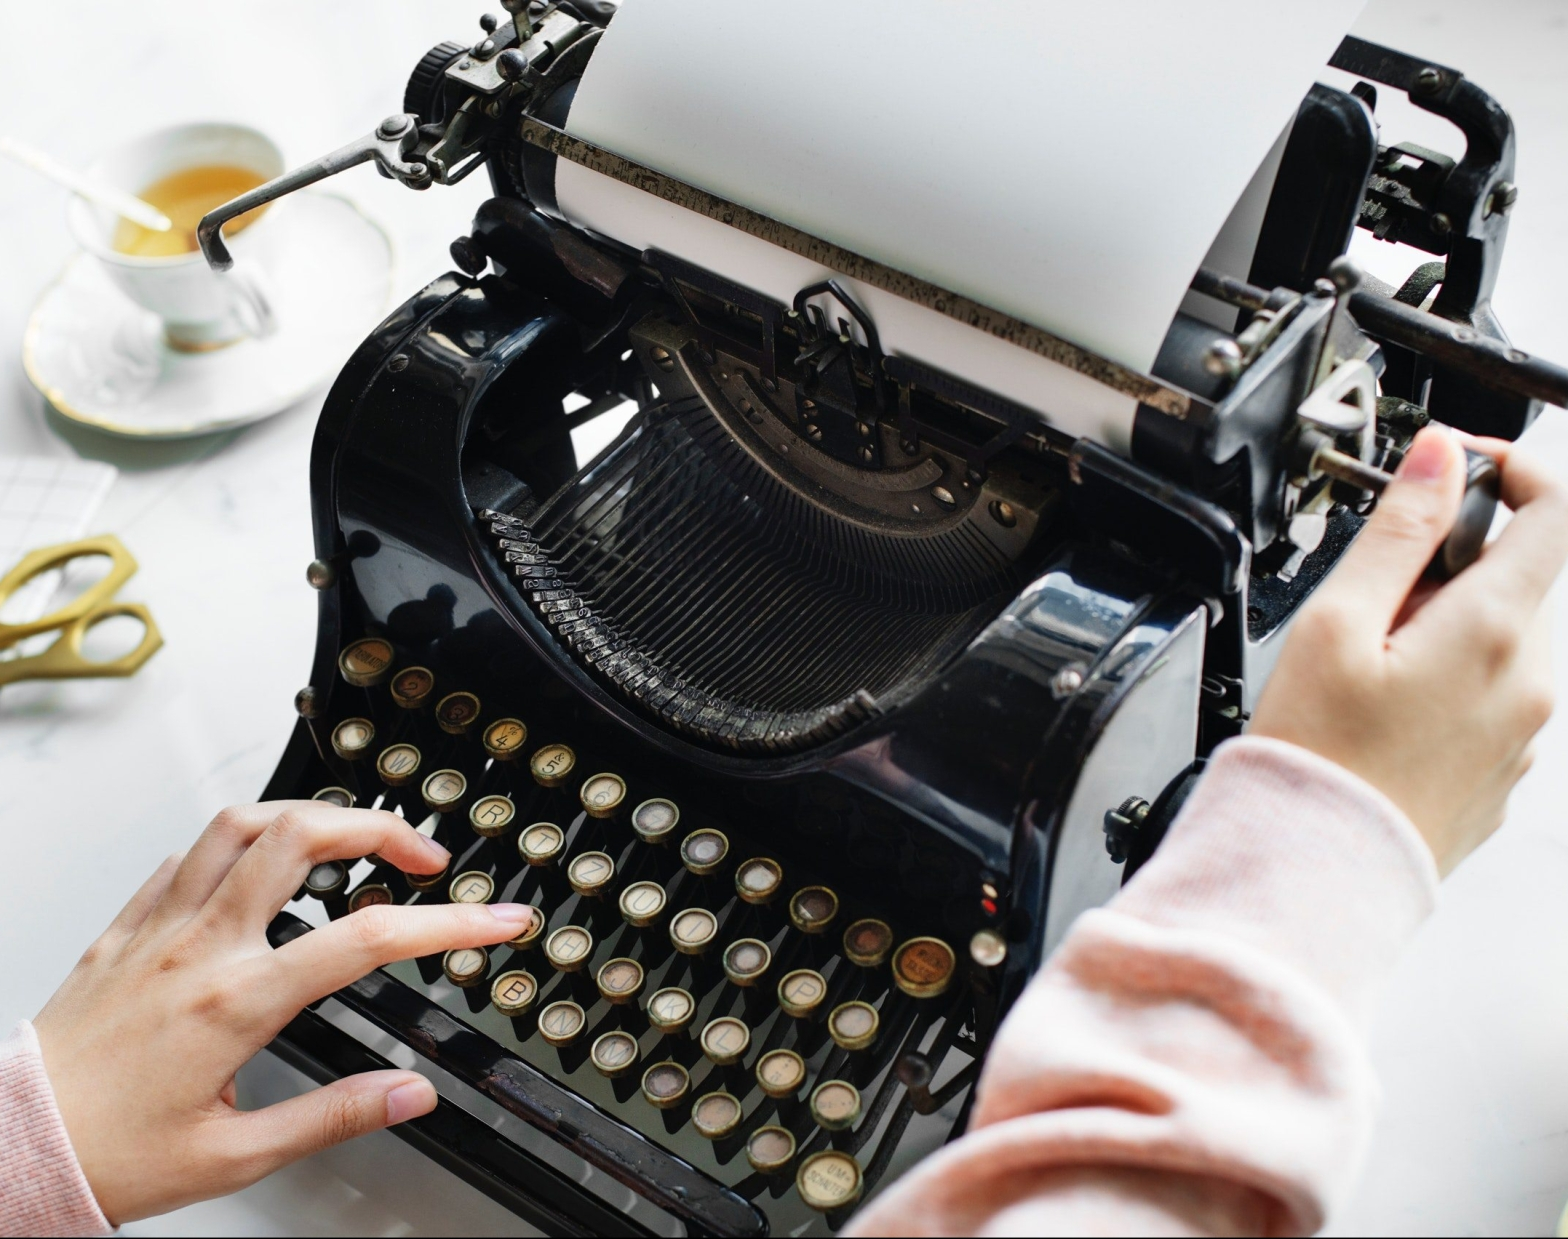 woman's hands hovering over old typewriter